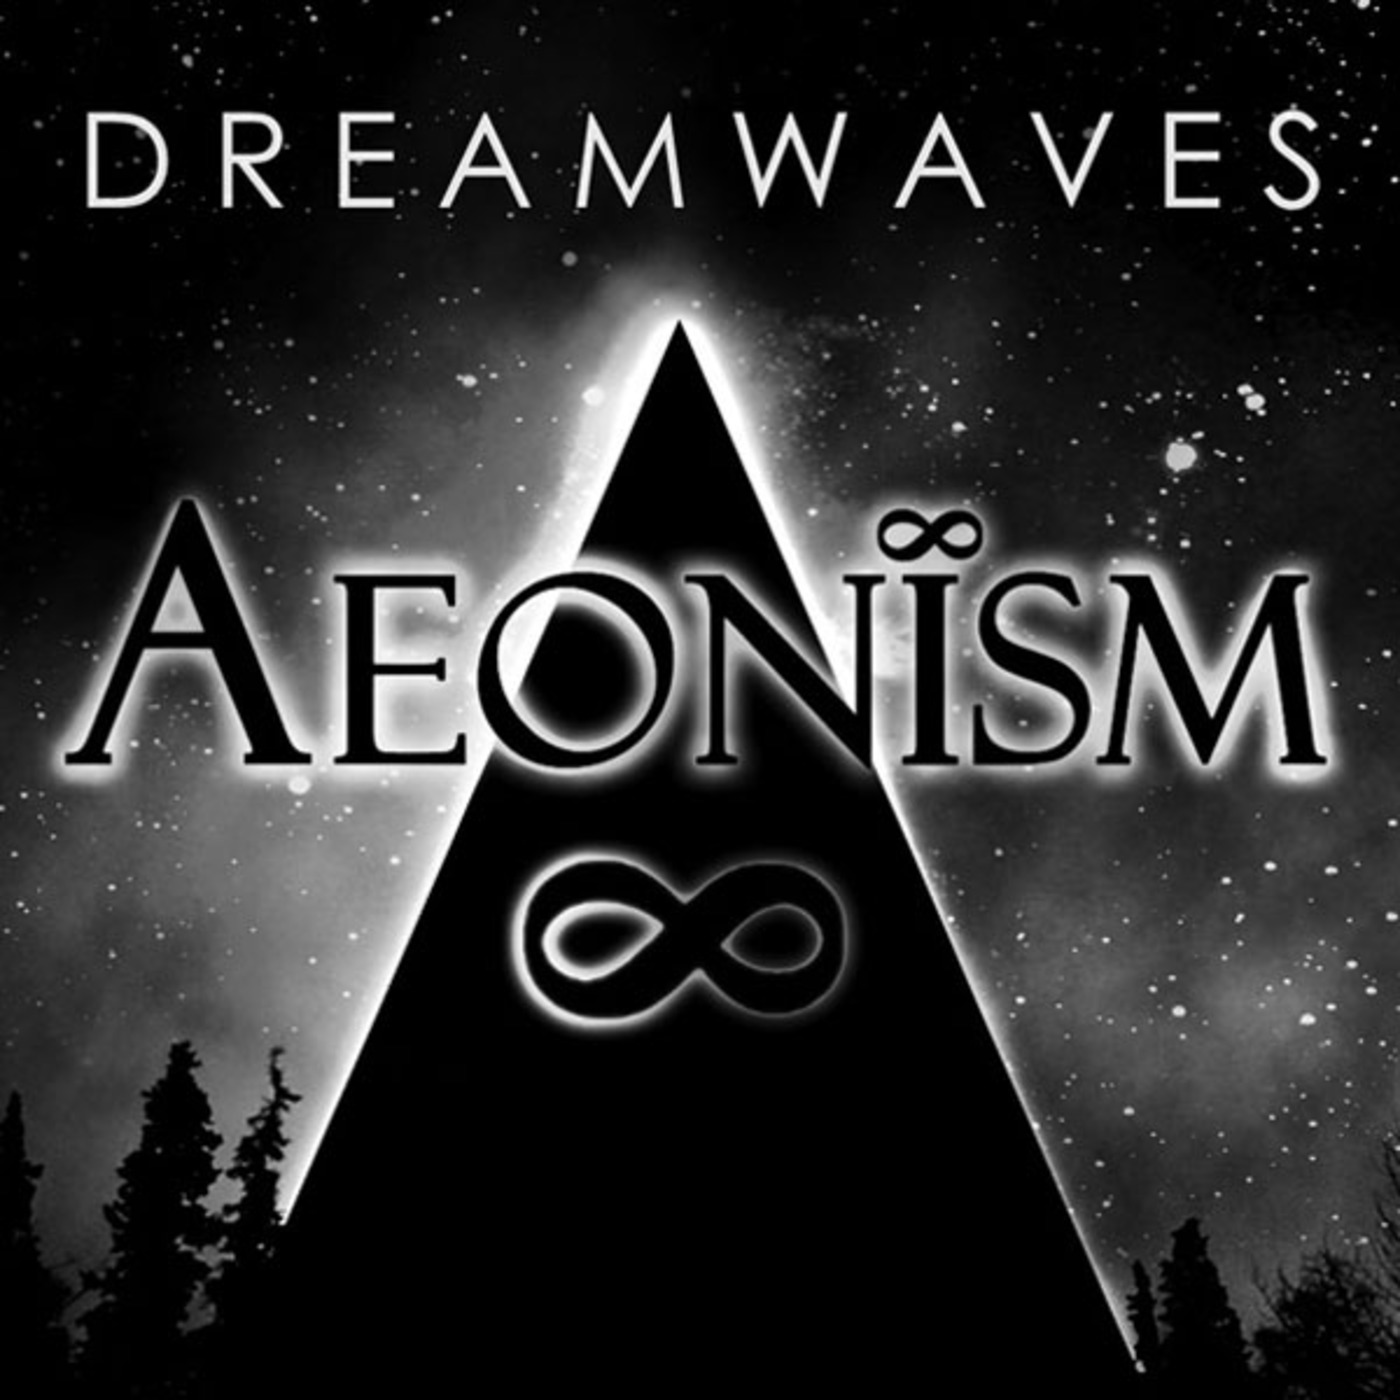 Aeonism - Dreamwaves